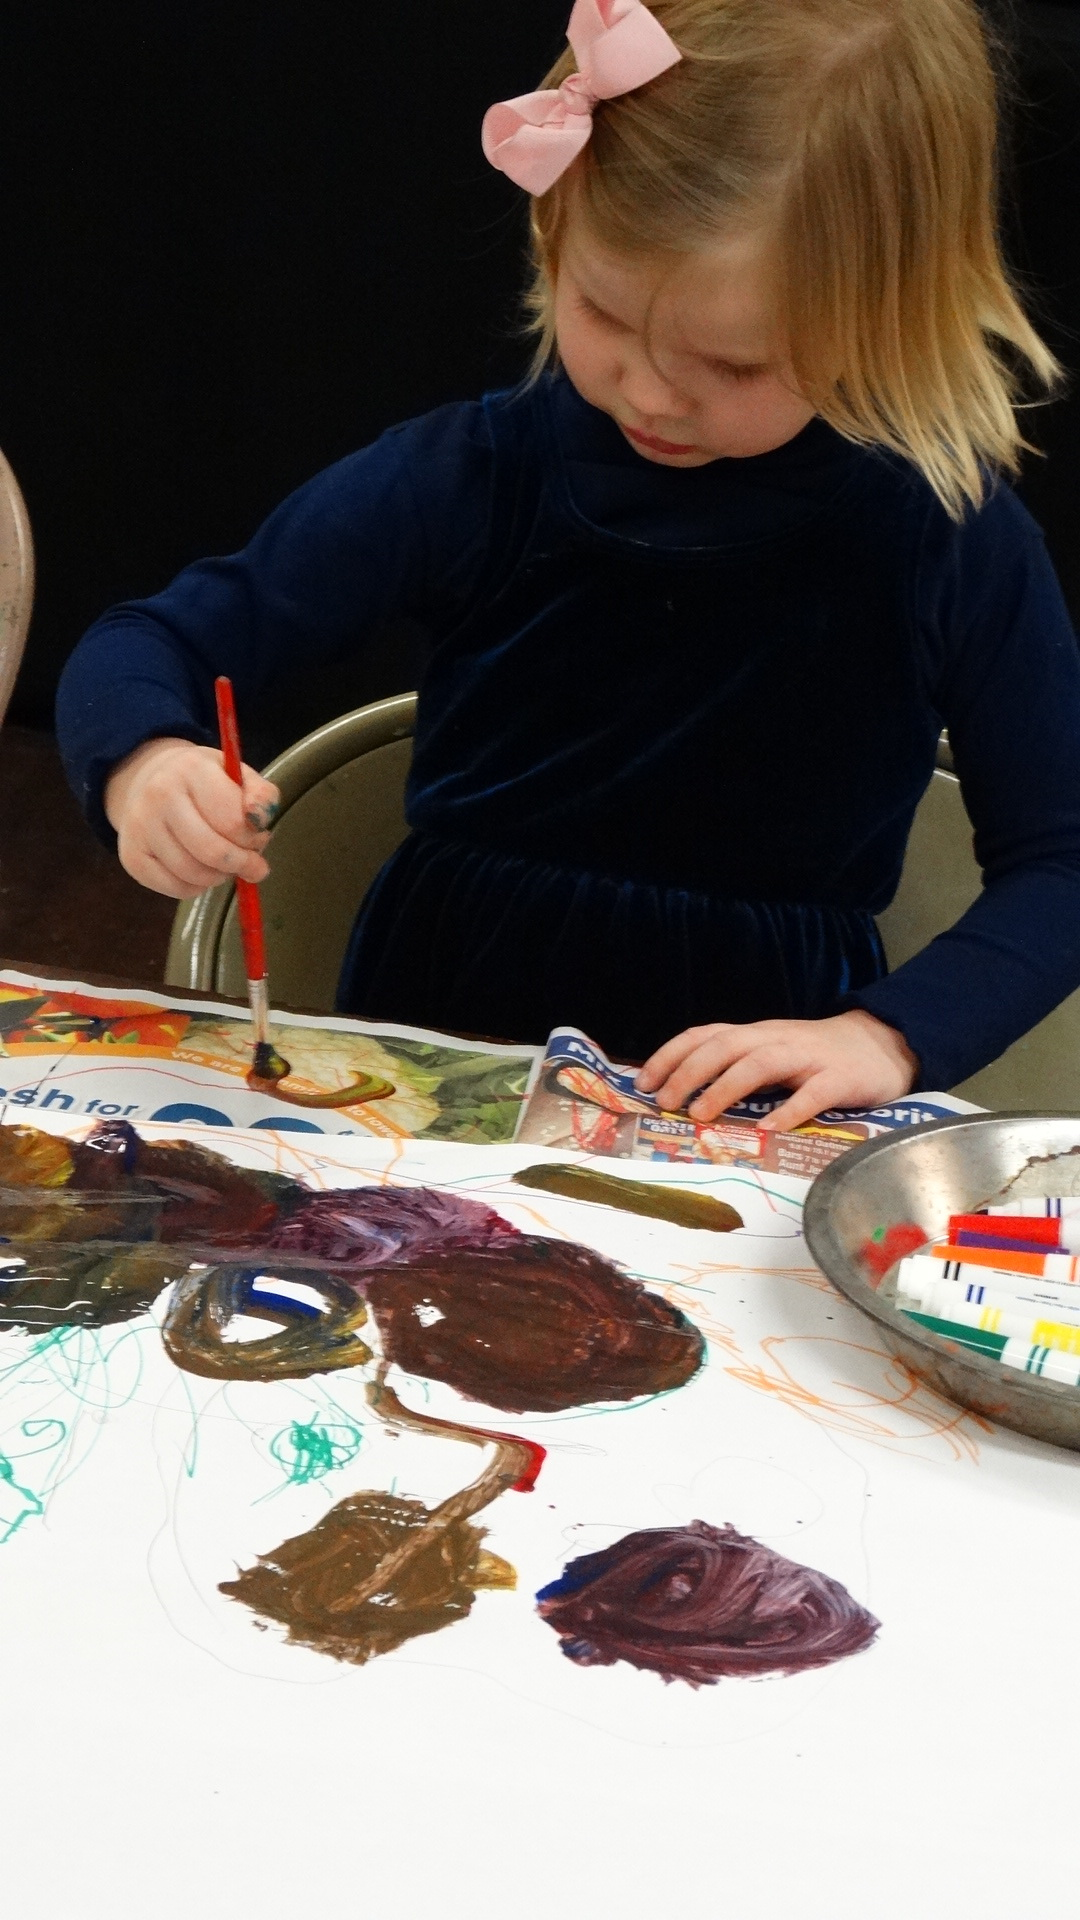 MAC Expressive Arts Feb 2017-020.JPG